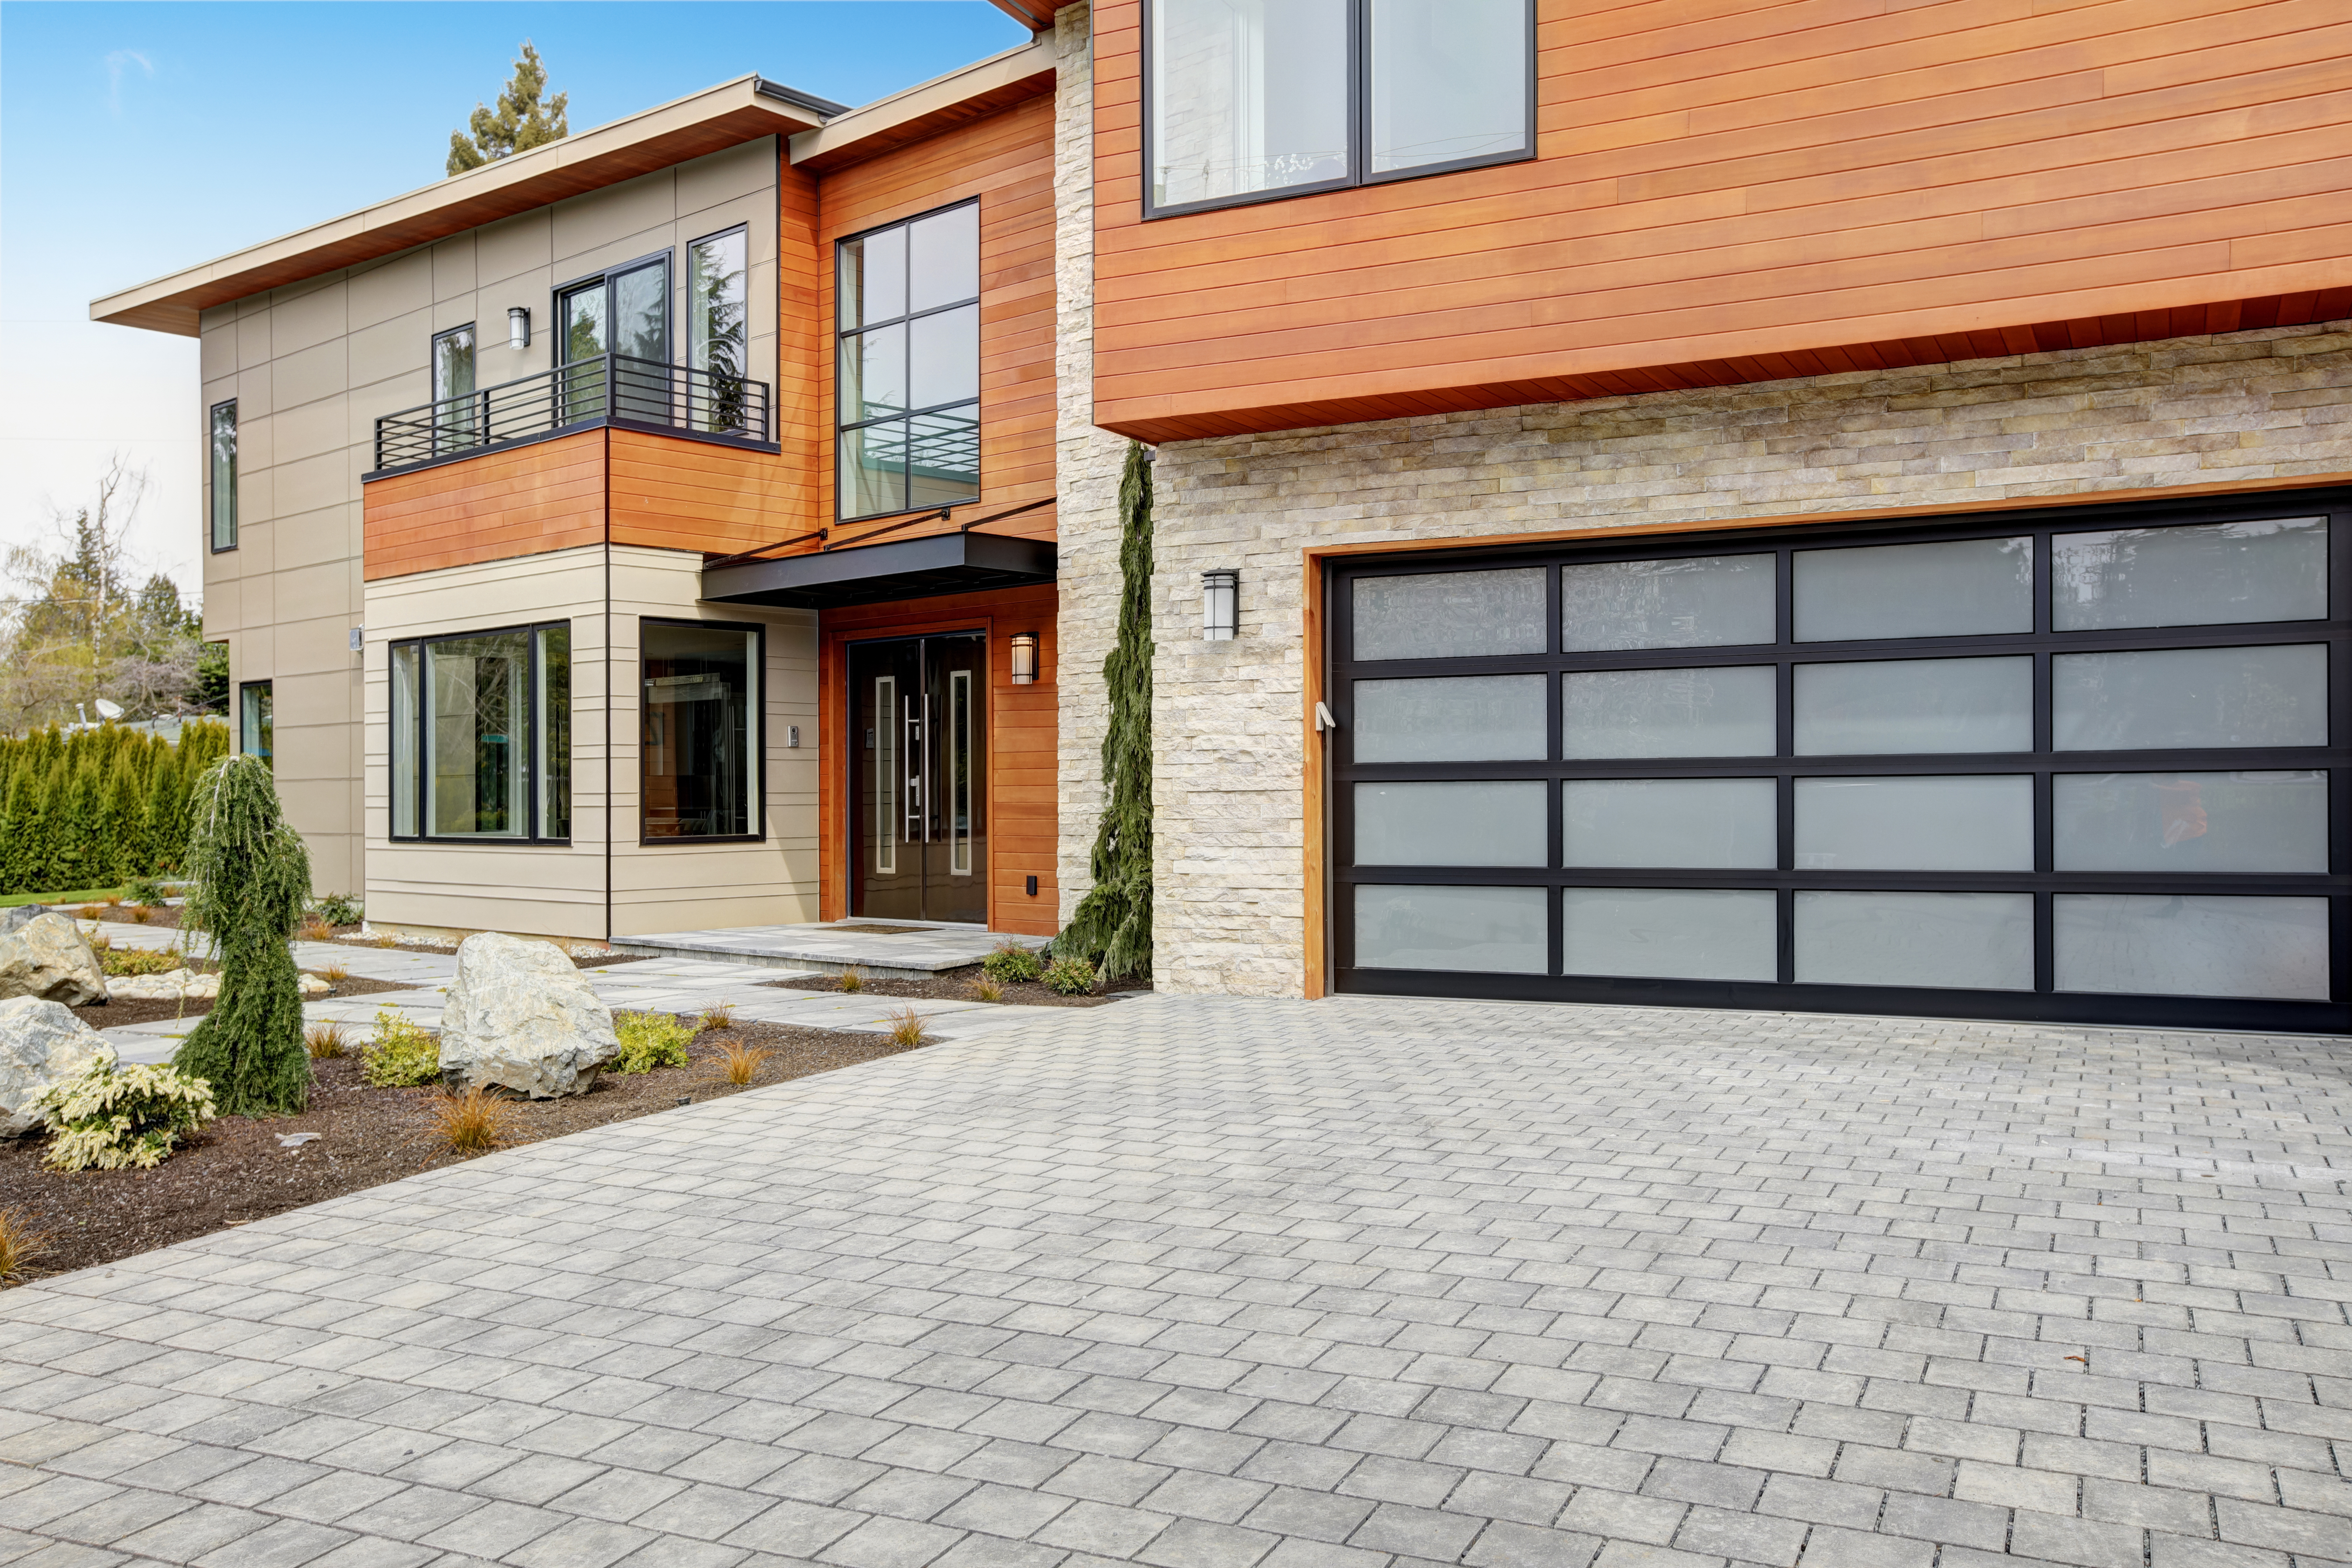 Garage Doors for Residential Properties